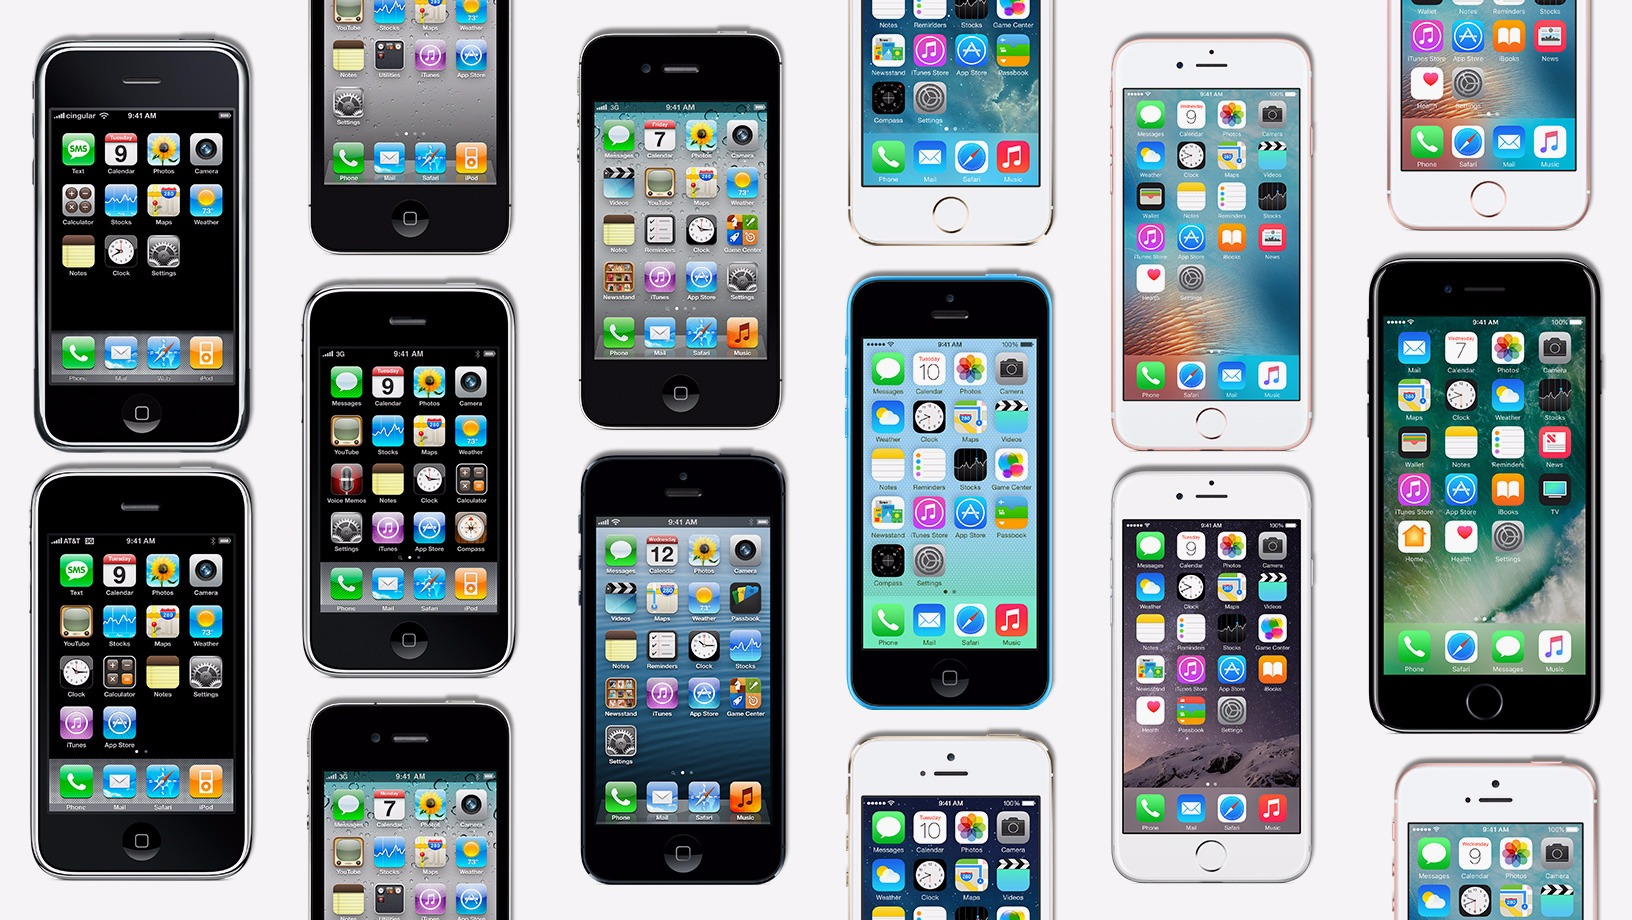 iphones over the years